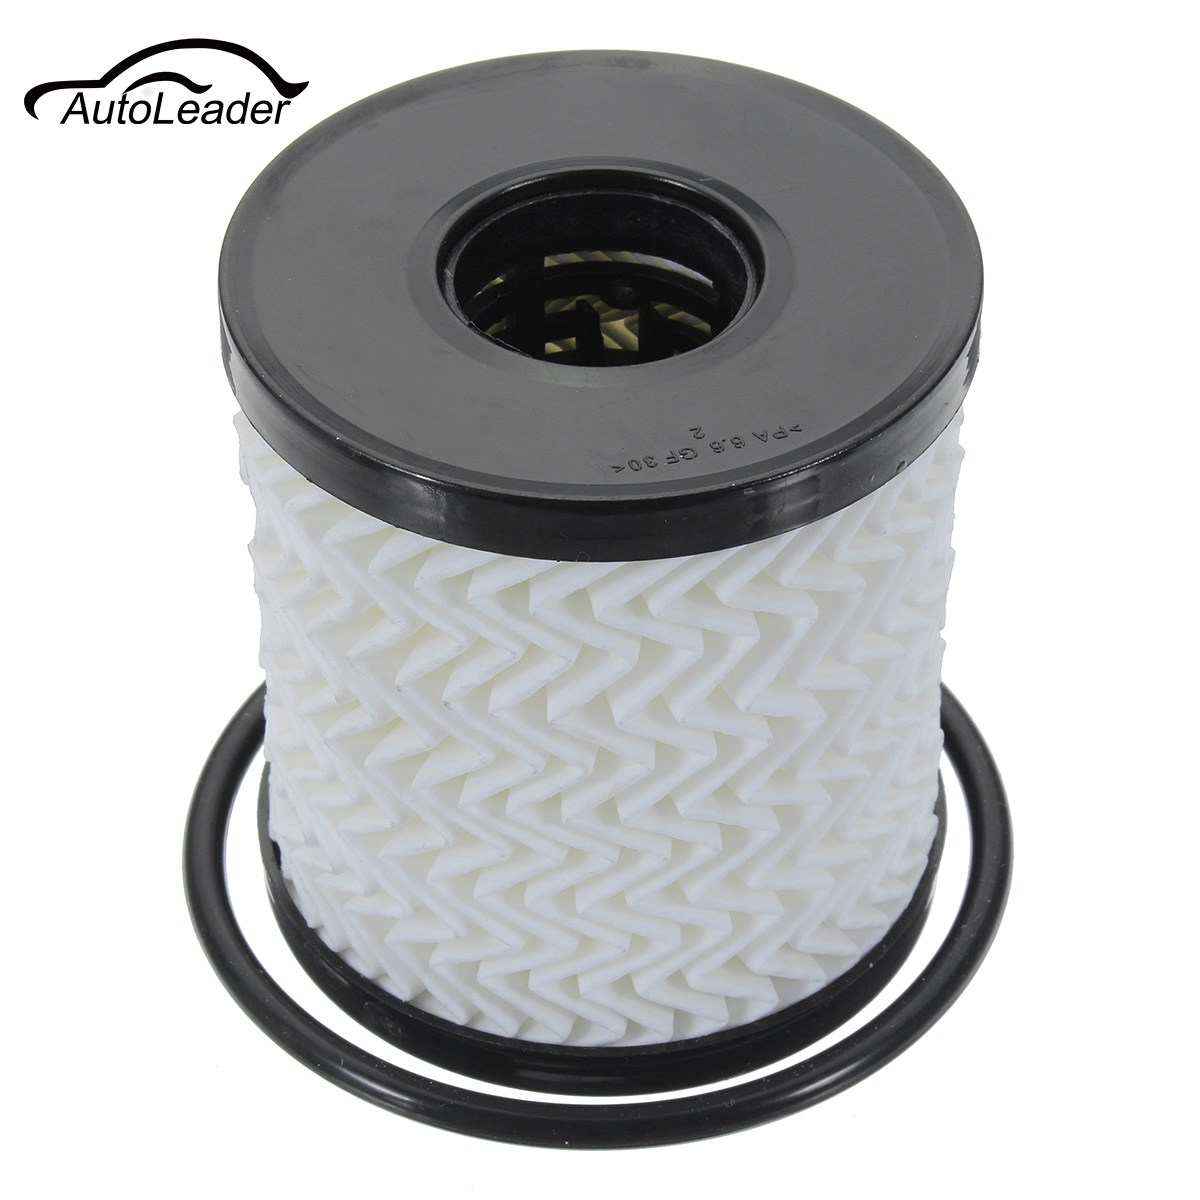 Car Oil Filter For Peugeot 307 206 / 207 / 408 / 508 For Citroen Elysee Picasso C2 C5 1109.3X